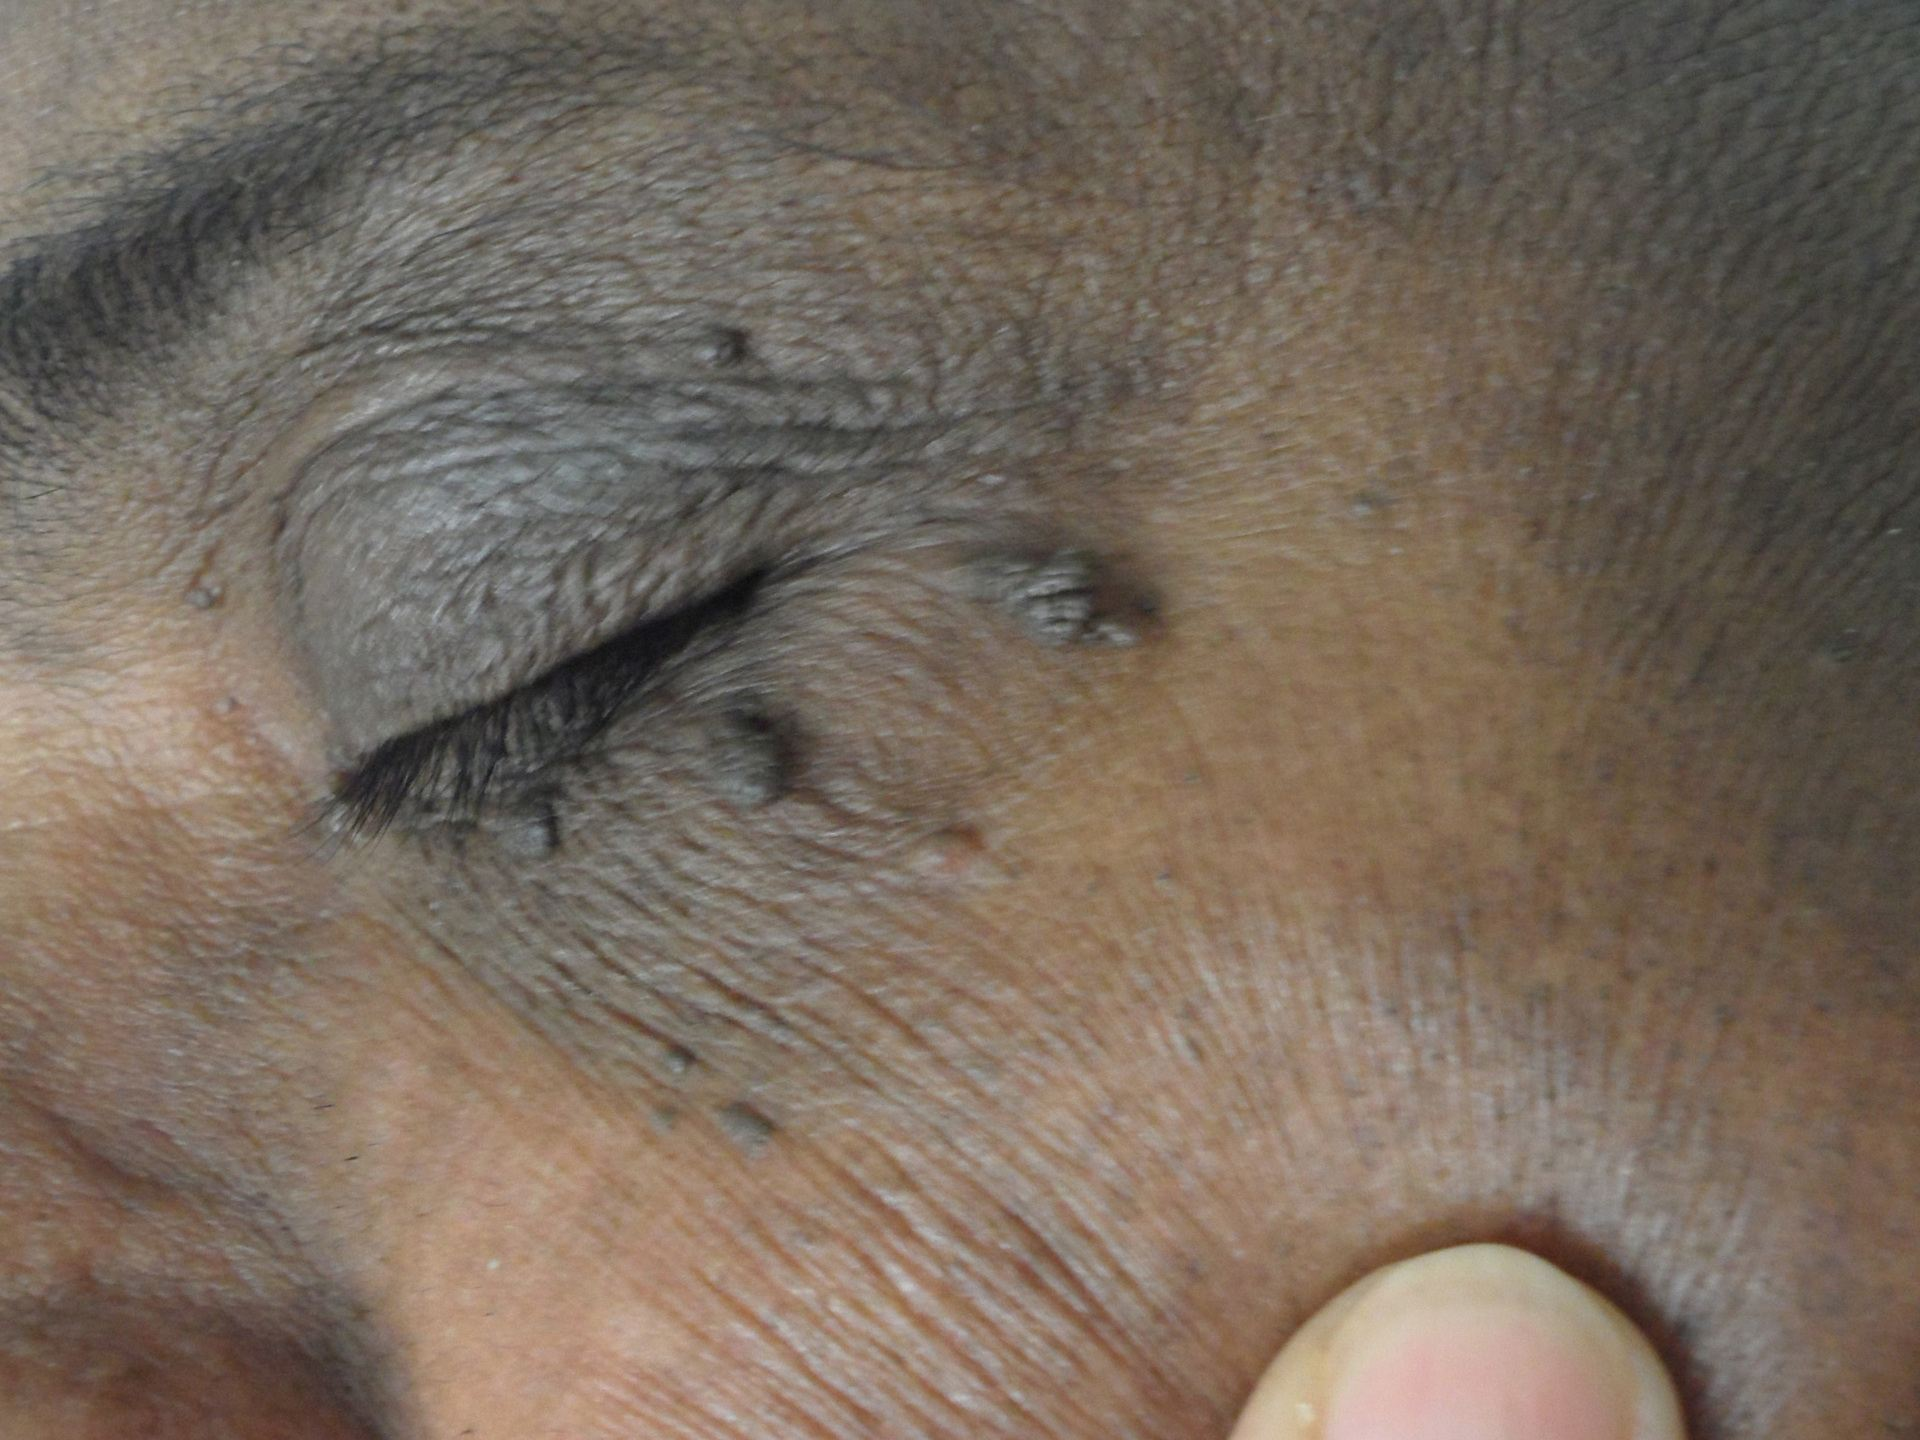 Eyelid with imperfections